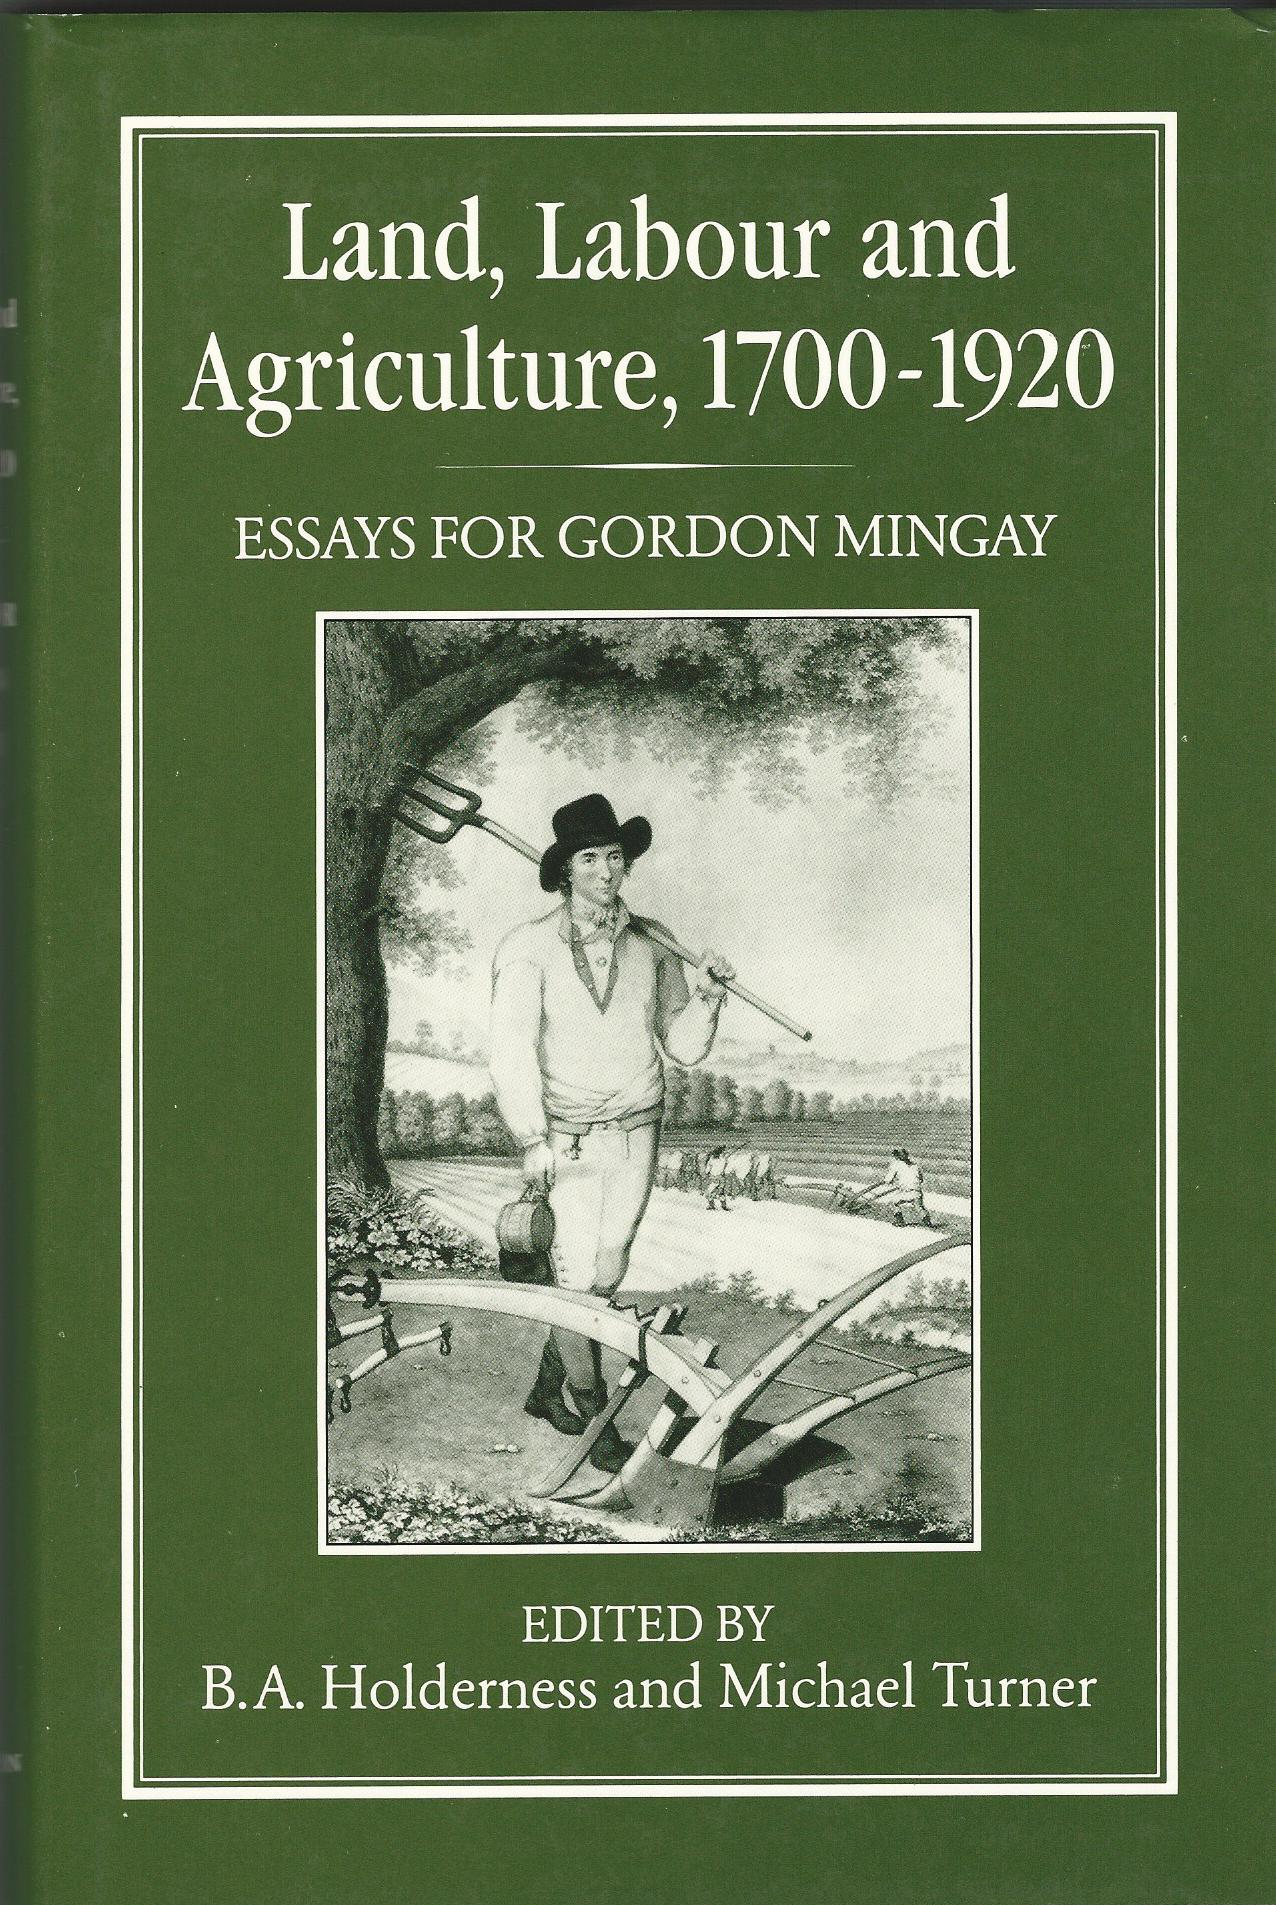 Image for Land, Labour and Agriculture, 1700-1920: Essays for Gordon Mingay